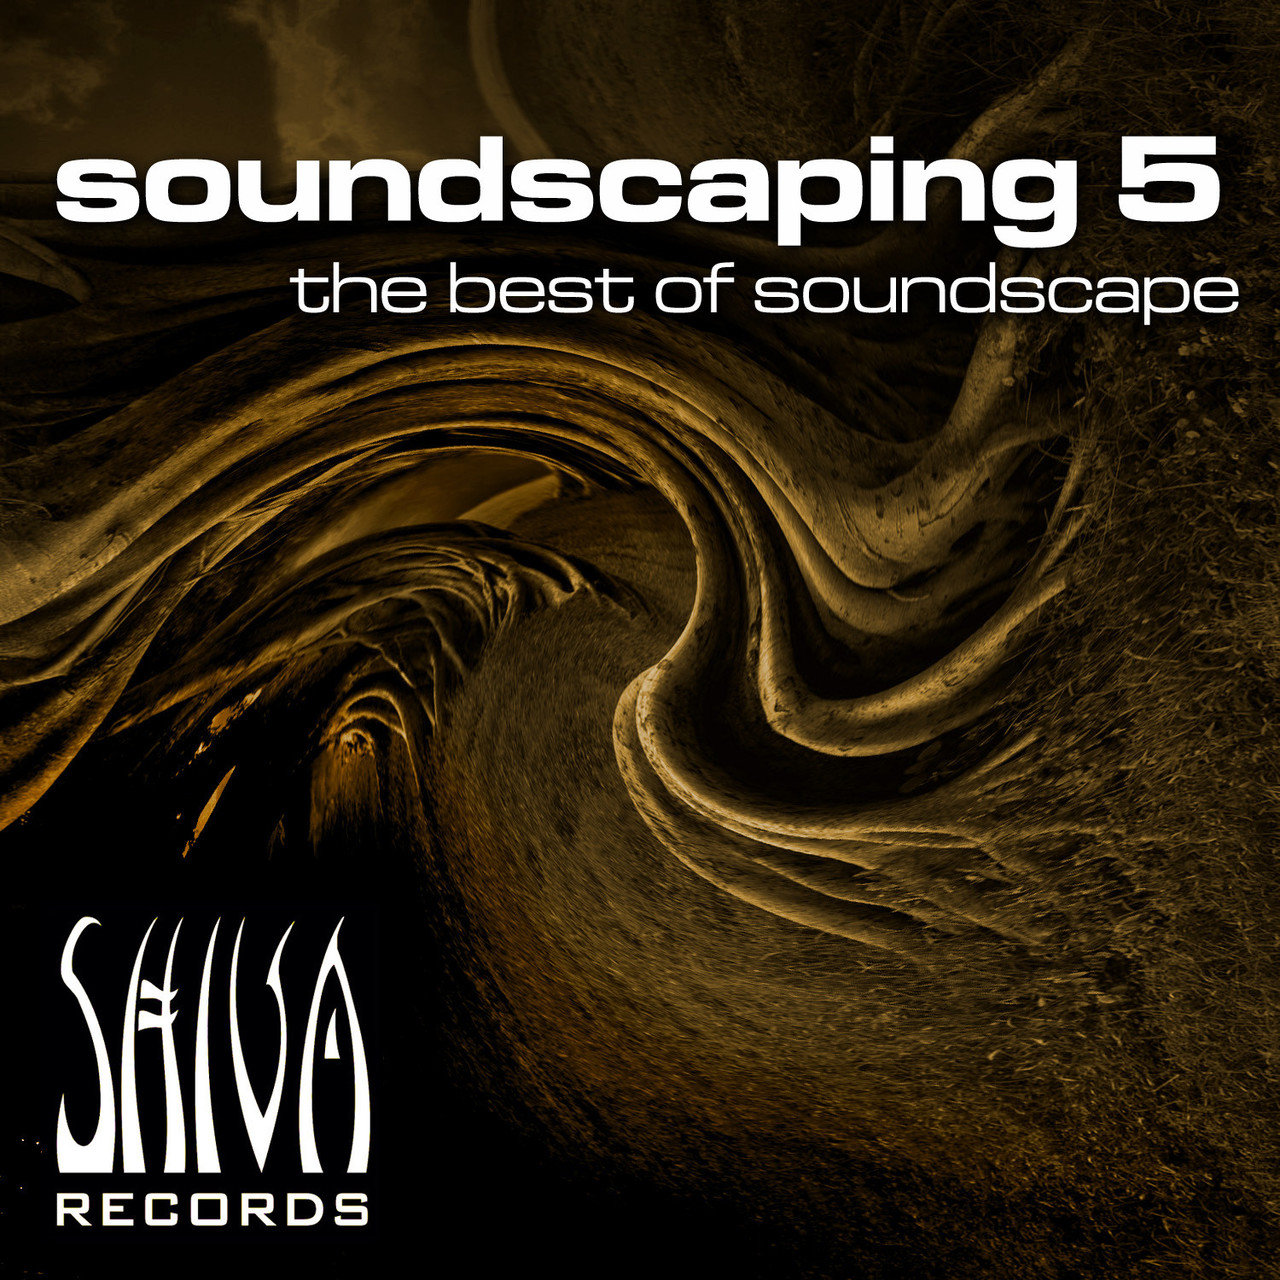 Soundscaping, Vol. 5